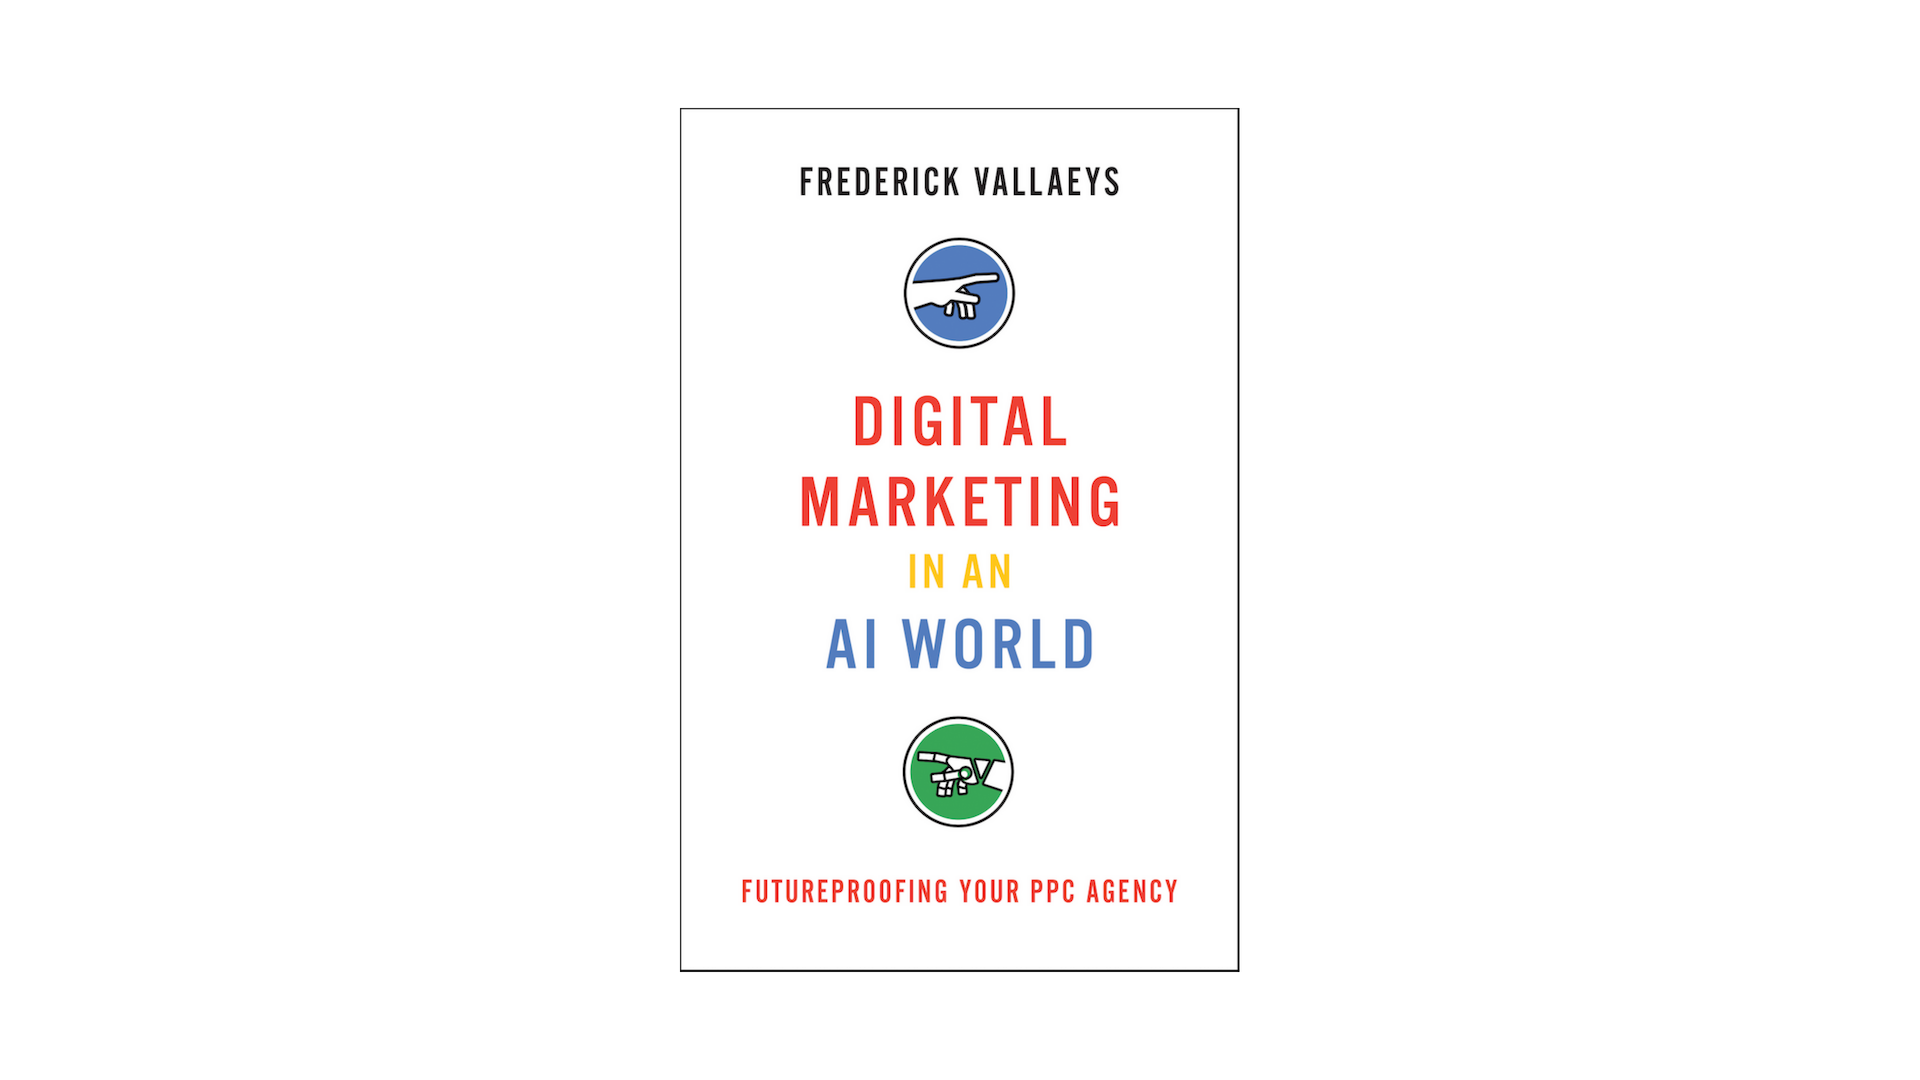 Digital Marketing in an AI World